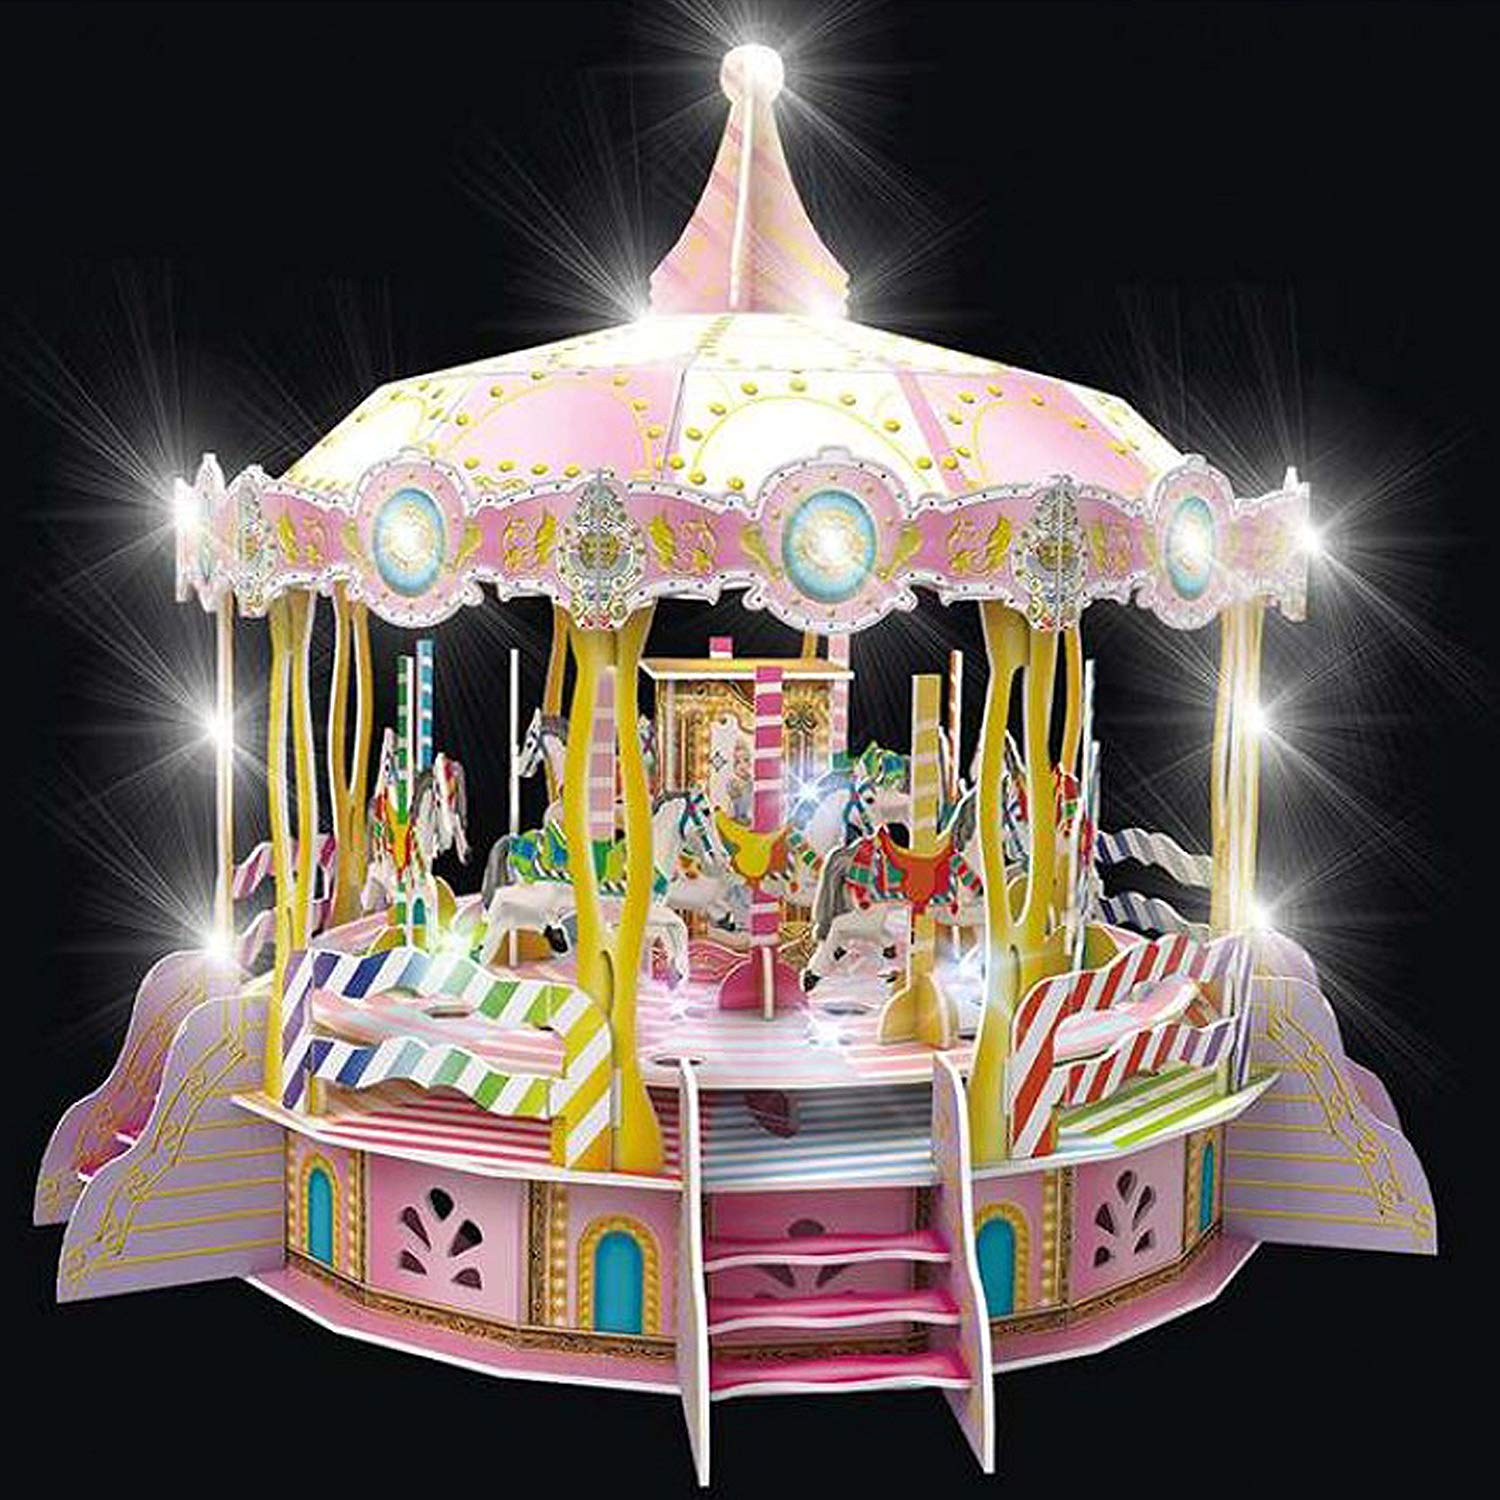 DIY 3D Merry Go Round Puzzle Carousel Model Rotates 360